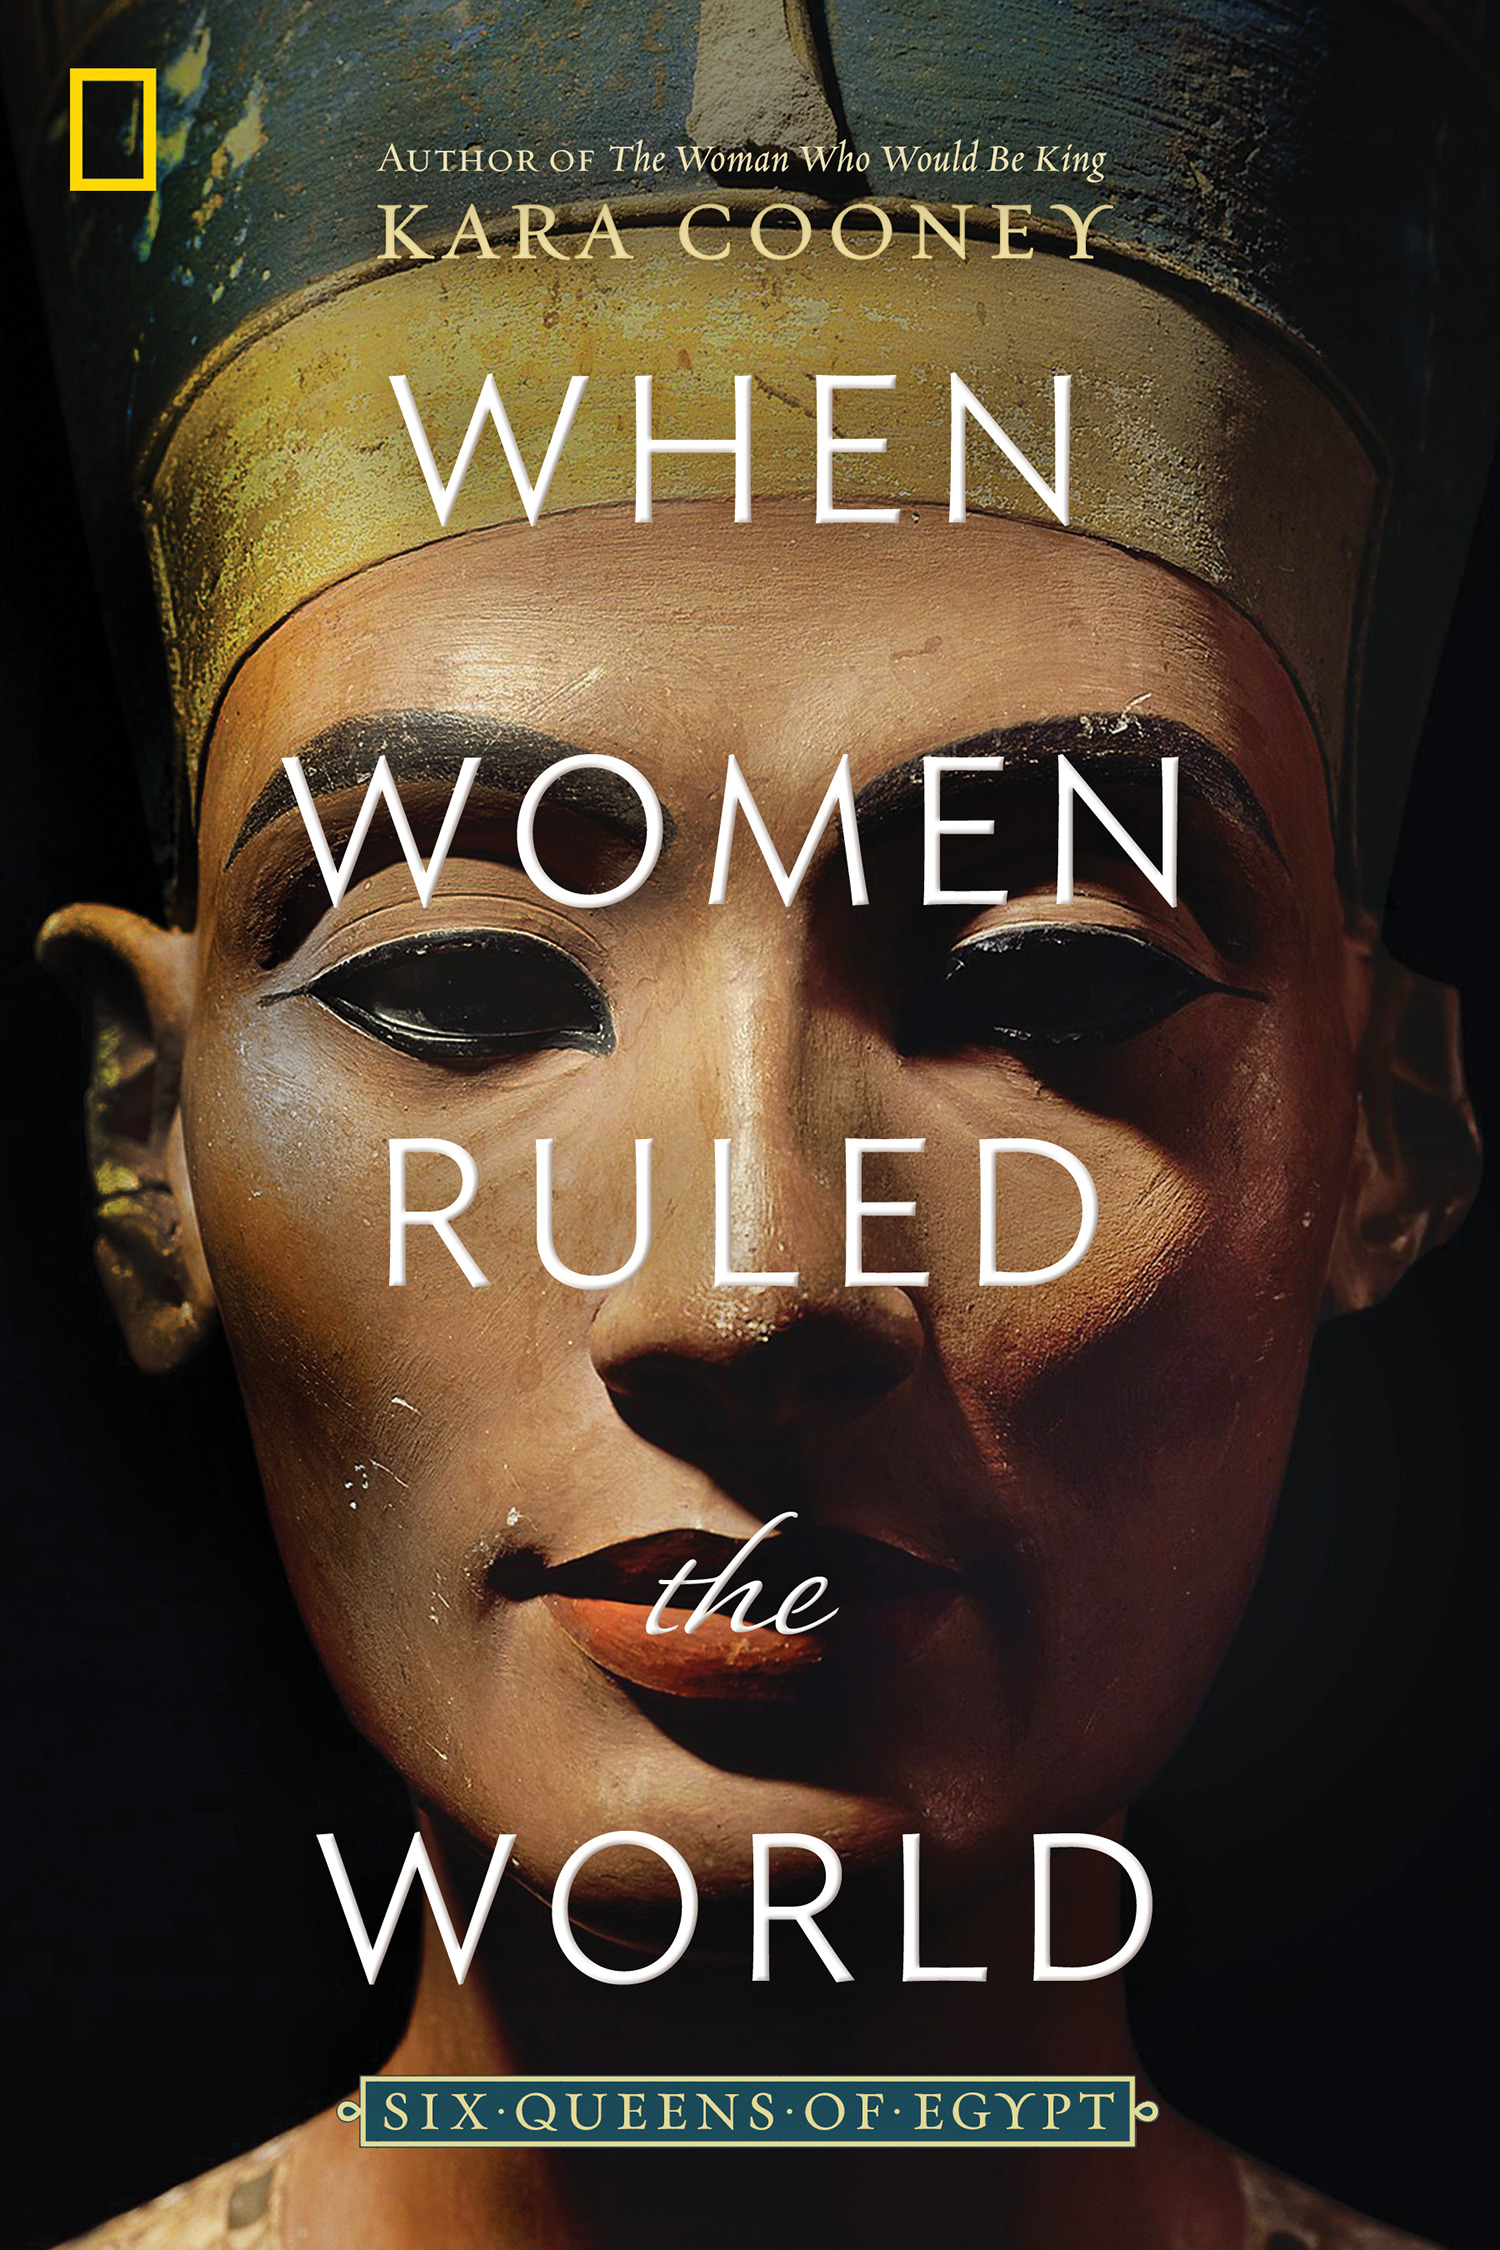 WHEN WOMEN RULED THE WORLD: Six Queens of Egypt by Kara Cooney